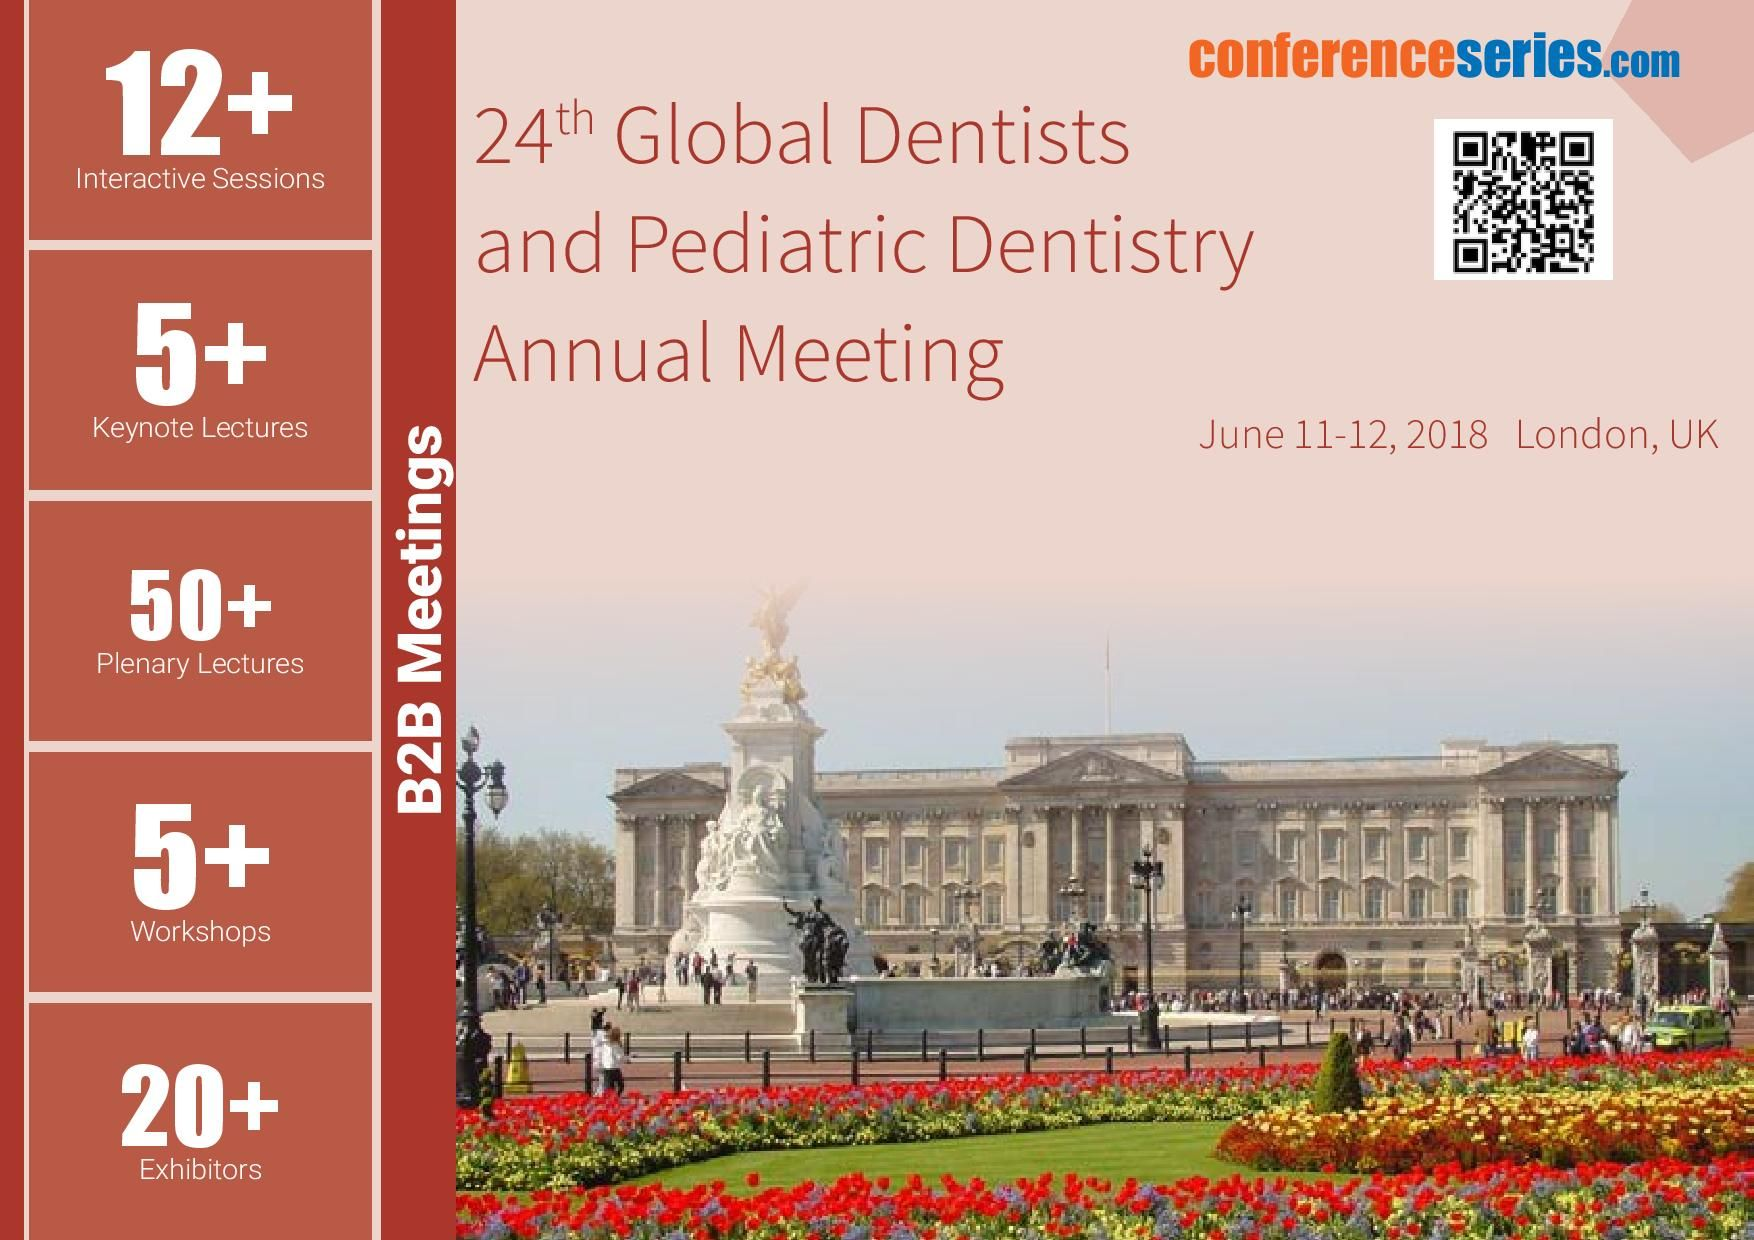 24th Global Dentists and Pediatric #Dentistry Annual Meeting